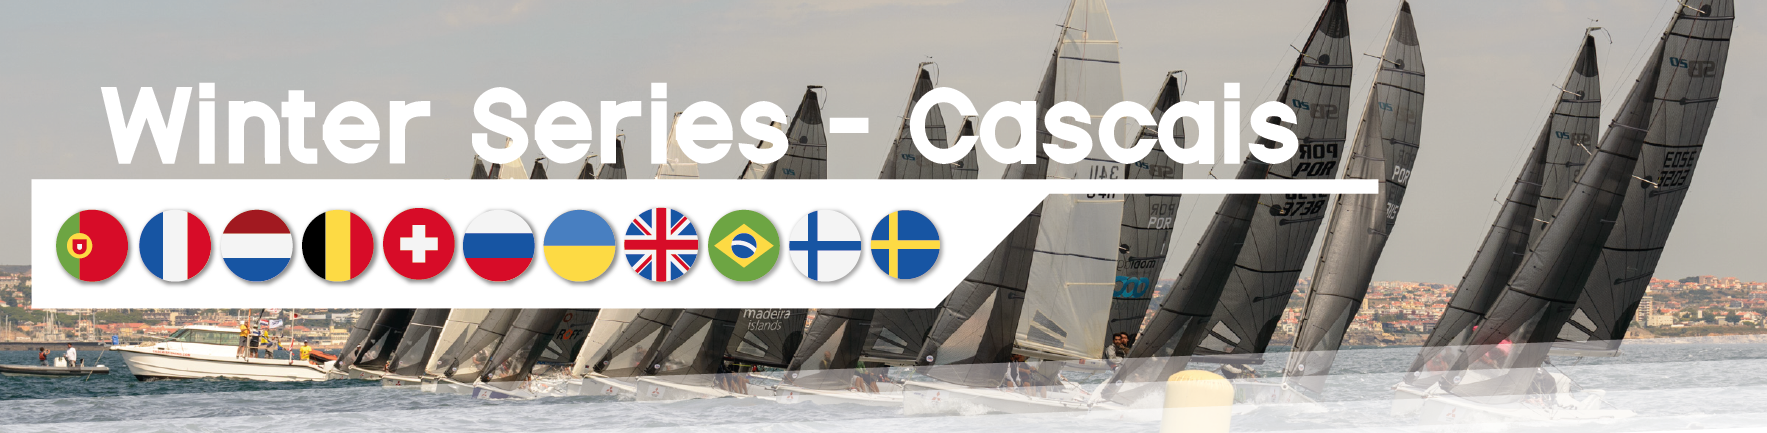 Cascais SB20 Winter Series 2019-2020